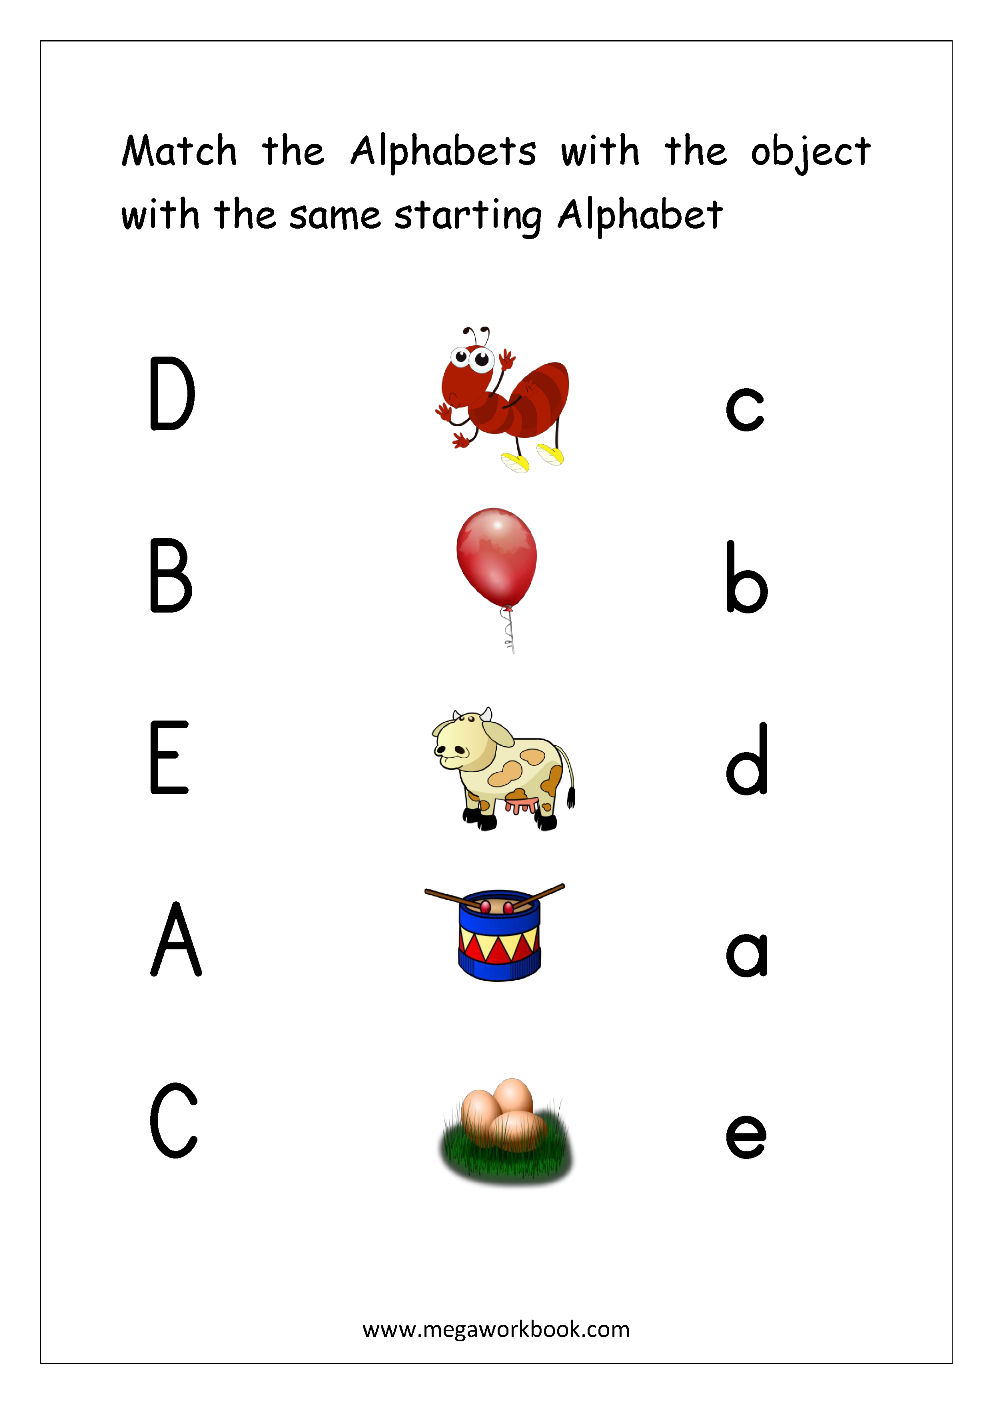 Worksheets On Alphabets For The Best Worksheets Image Collection